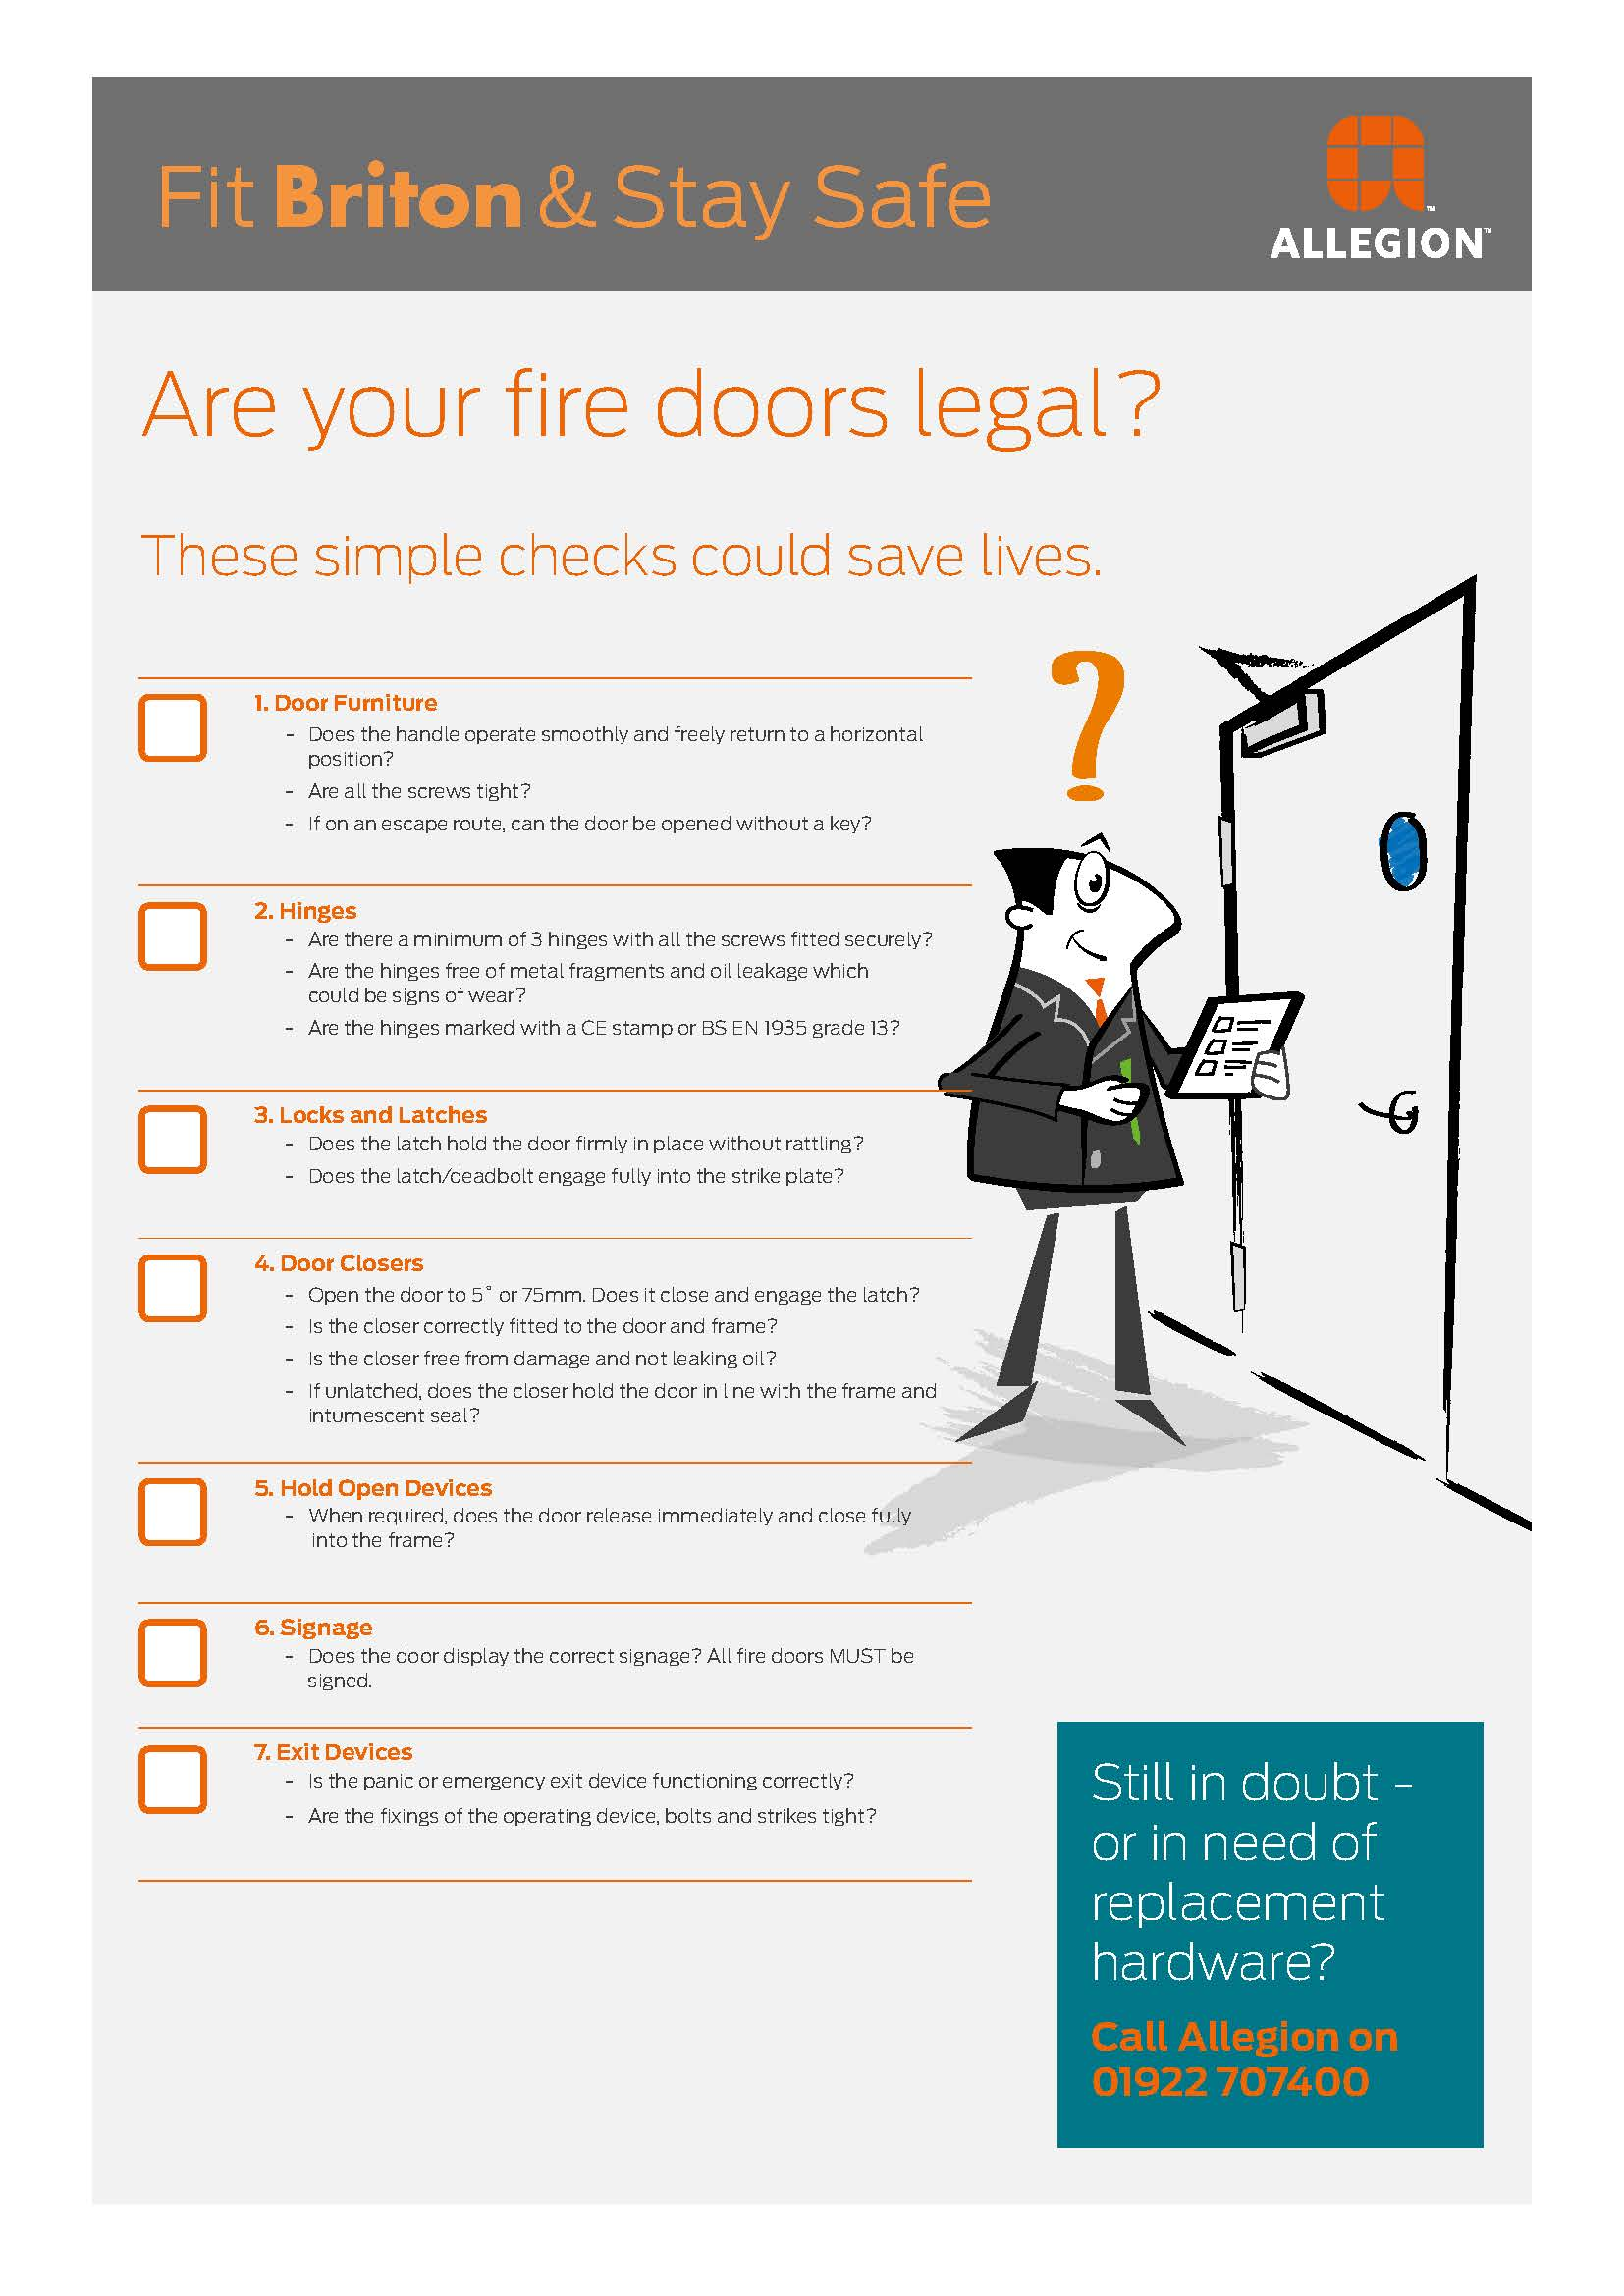 Allegion promotes the importance of fire door hardware